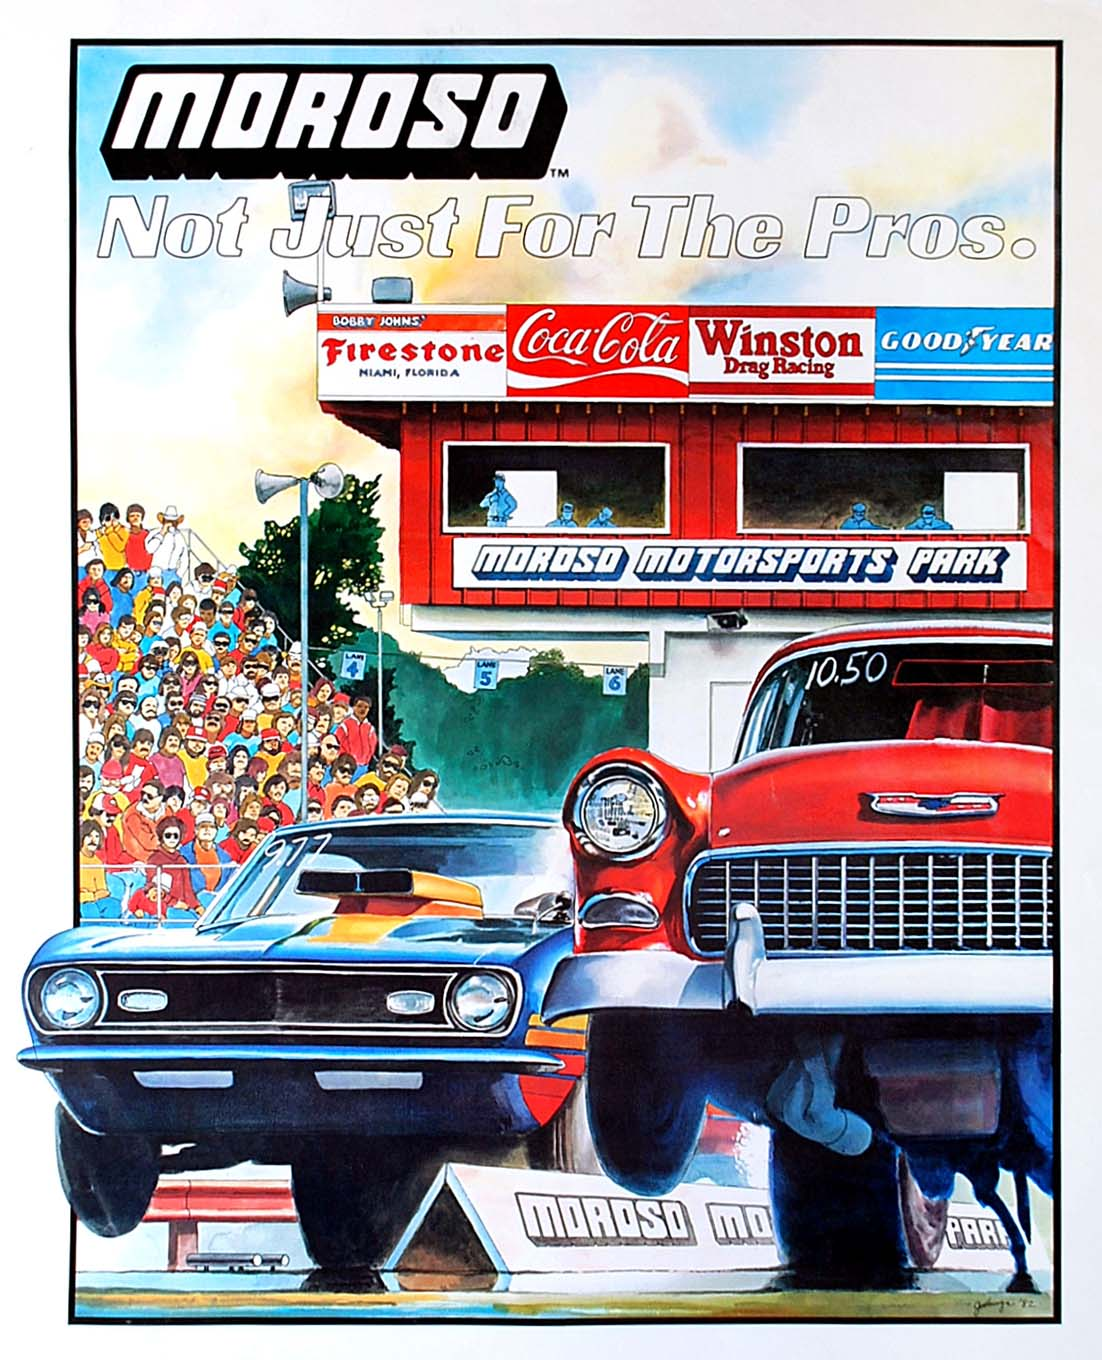 From the late-1970s through the 1980s, Jodauga did several full-page ads for Moroso that ran exclusively in Car Craft, including this one in 1982 promoting the company's Florida-based dragstrip, Moroso Motorsports Park.